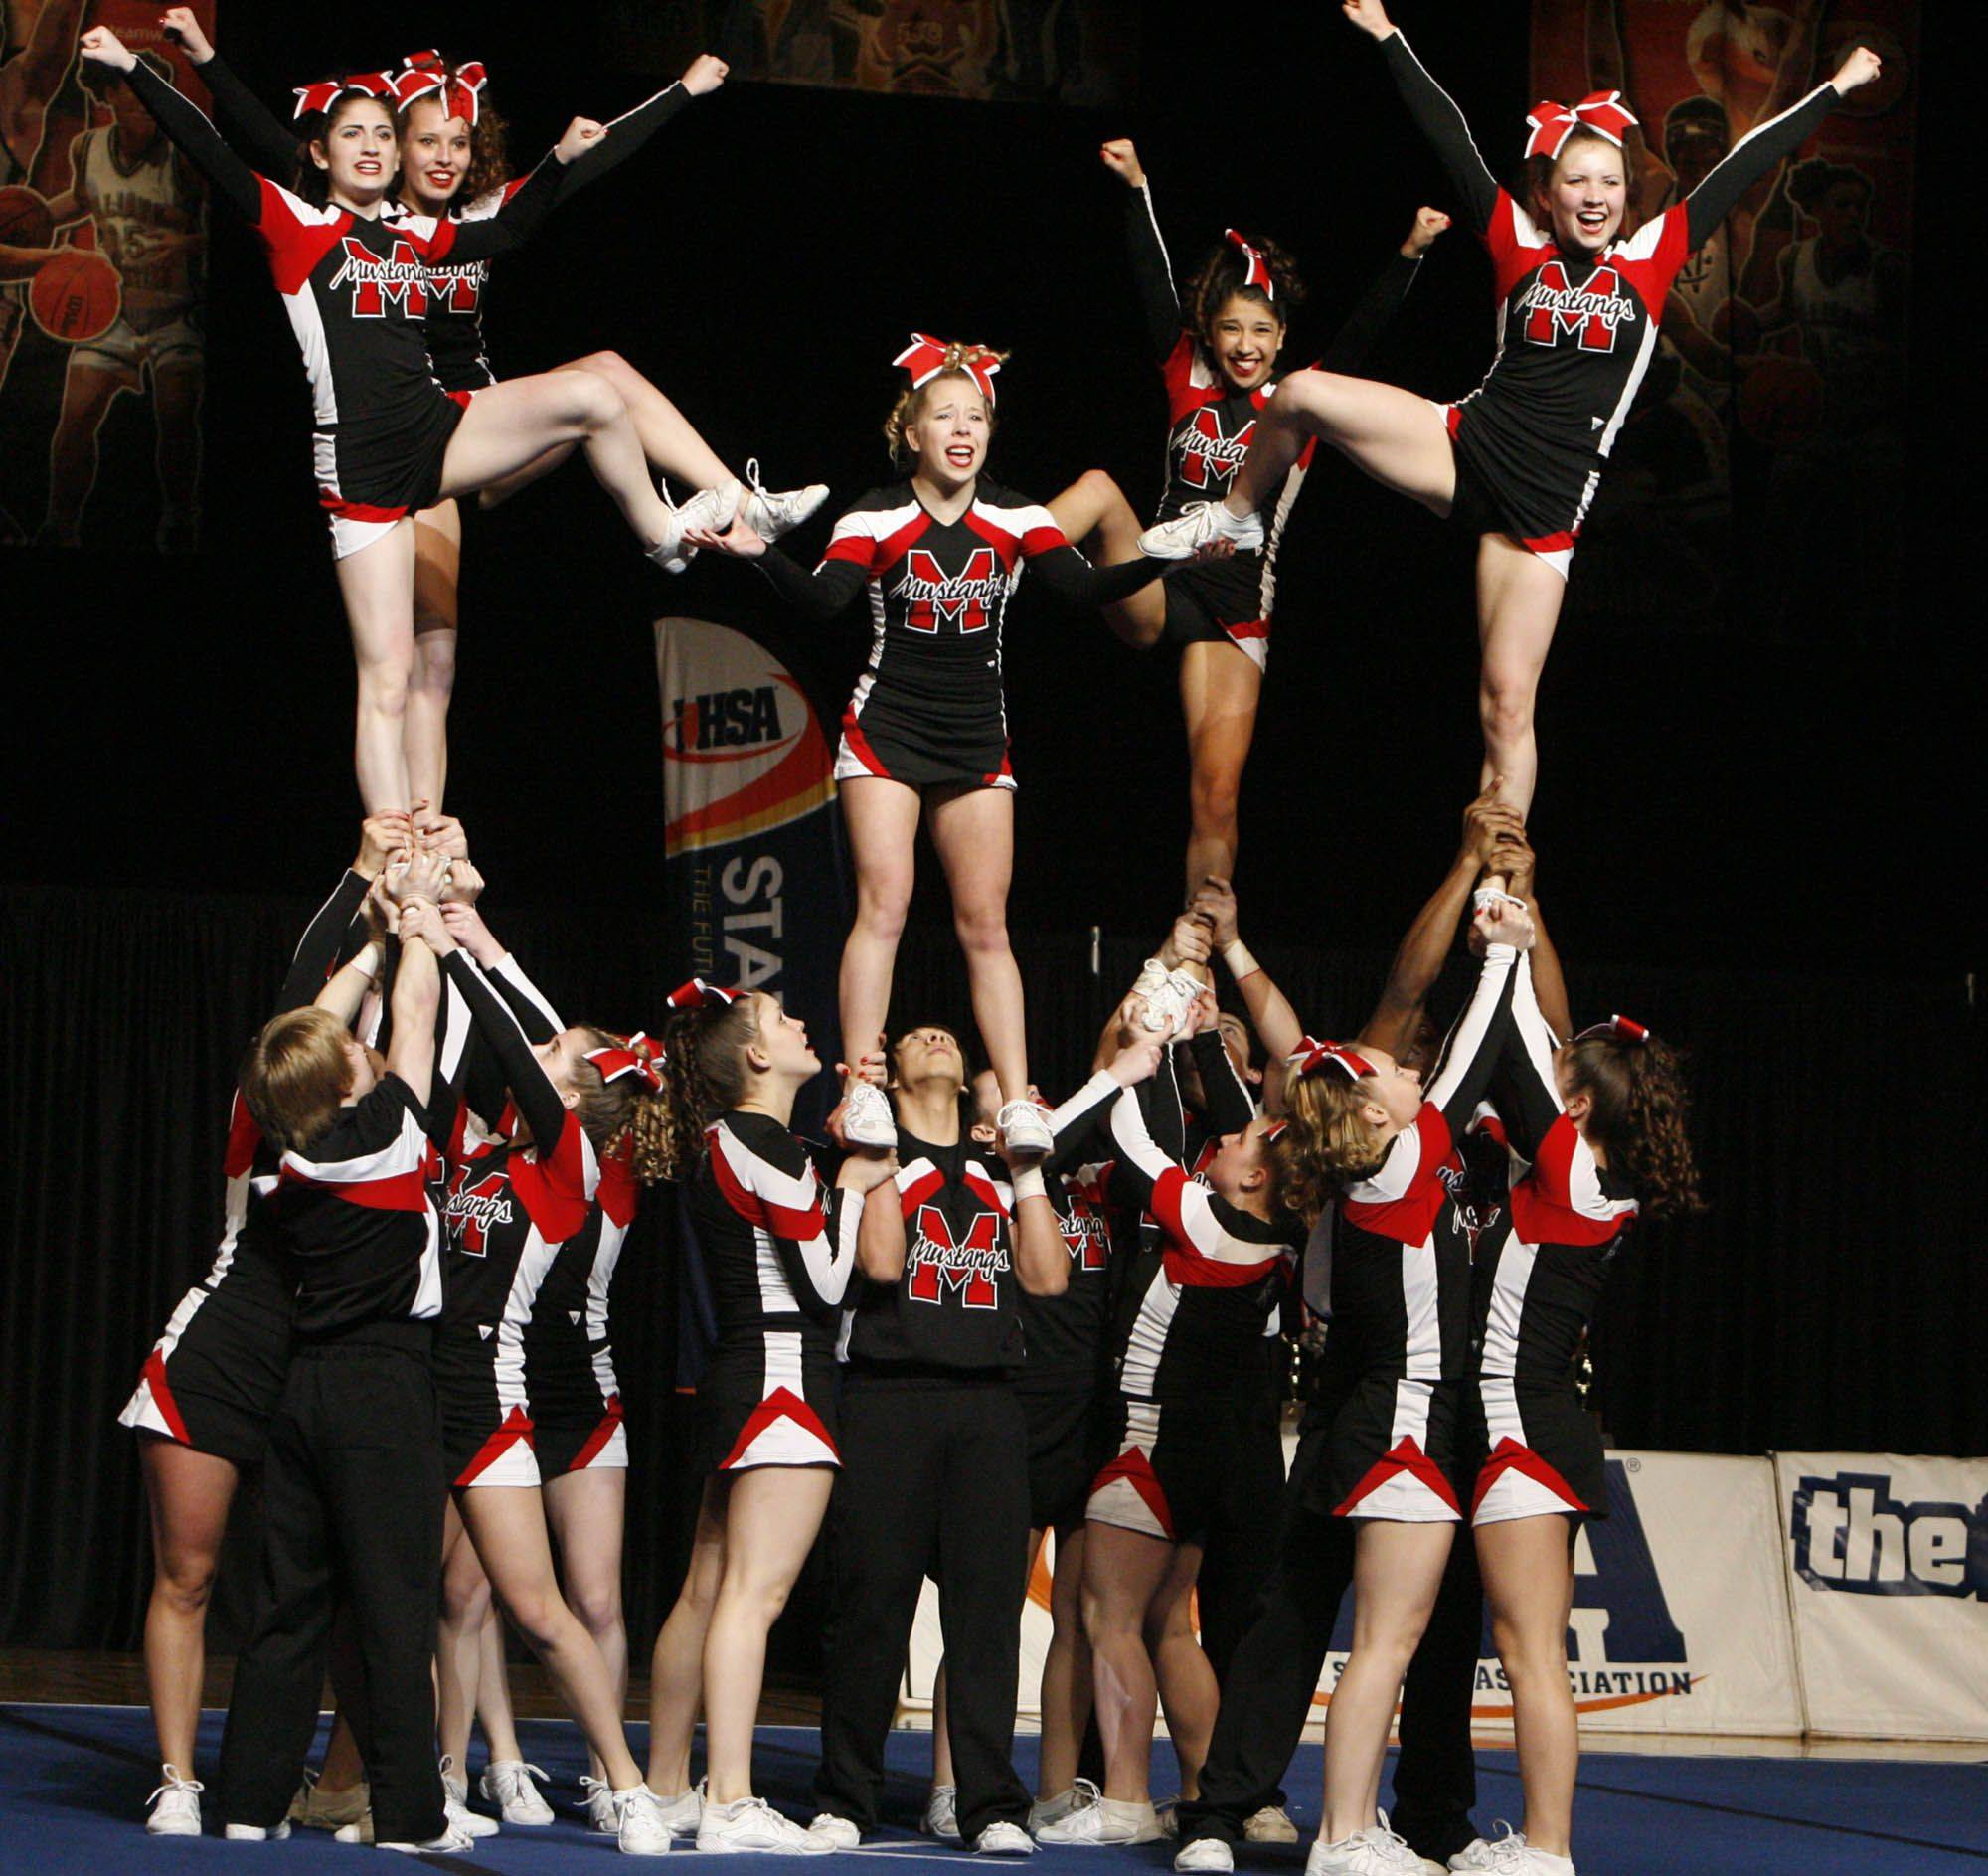 Mundelein performs at IHSA cheerleading state finals at U.S. Cellular Coliseum in Bloomington on Saturday, February 4th.